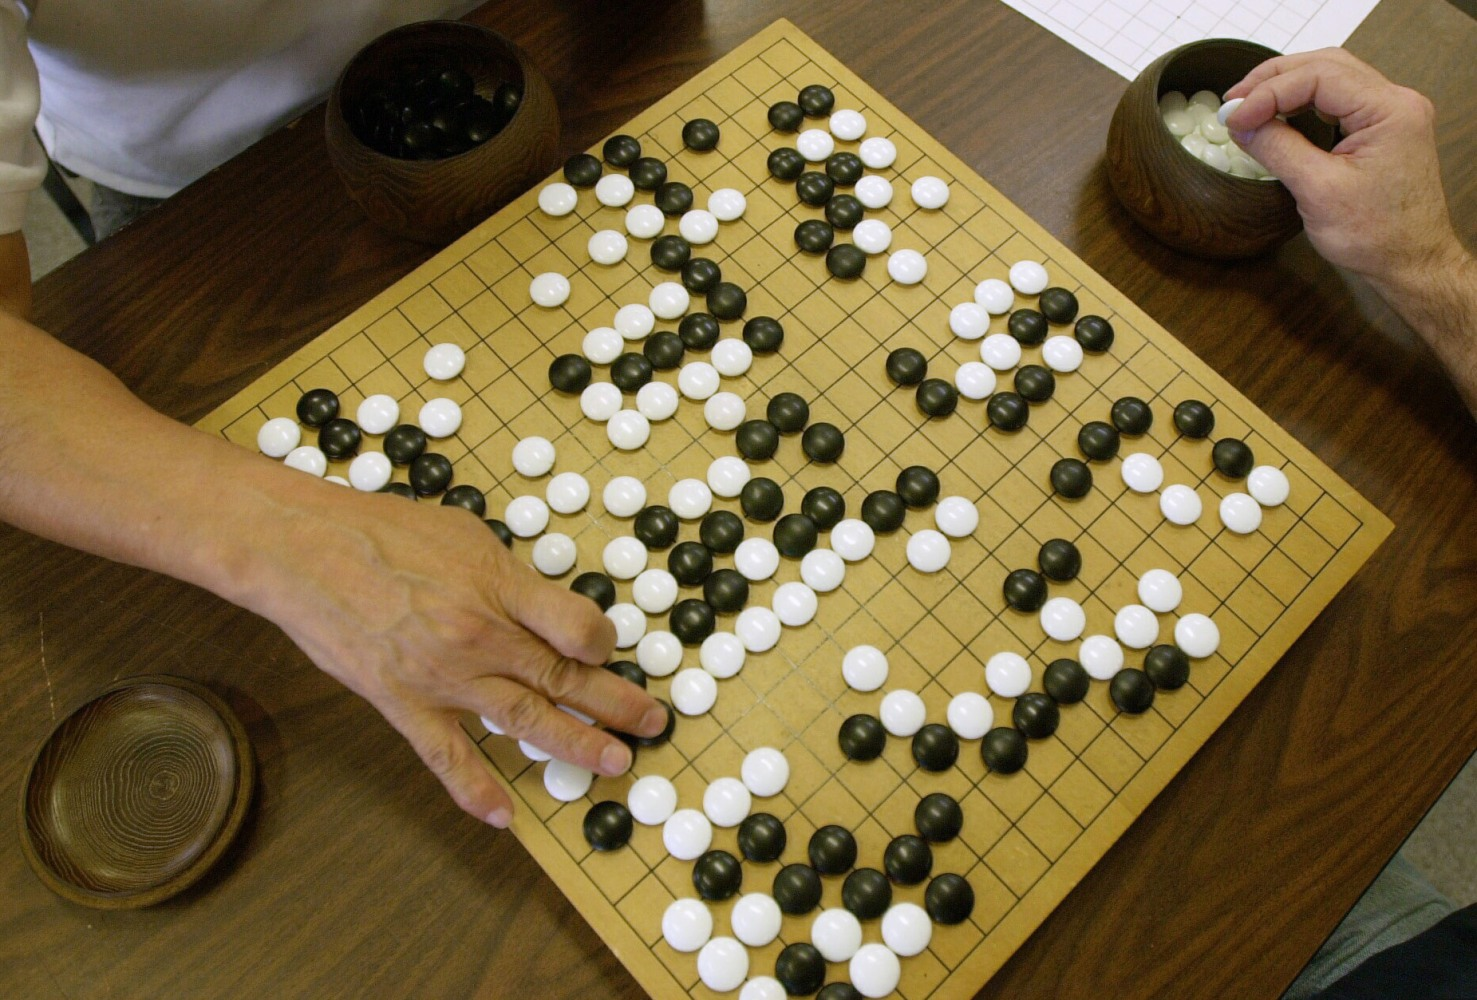 Go matches between lee sedol and alphago push ai